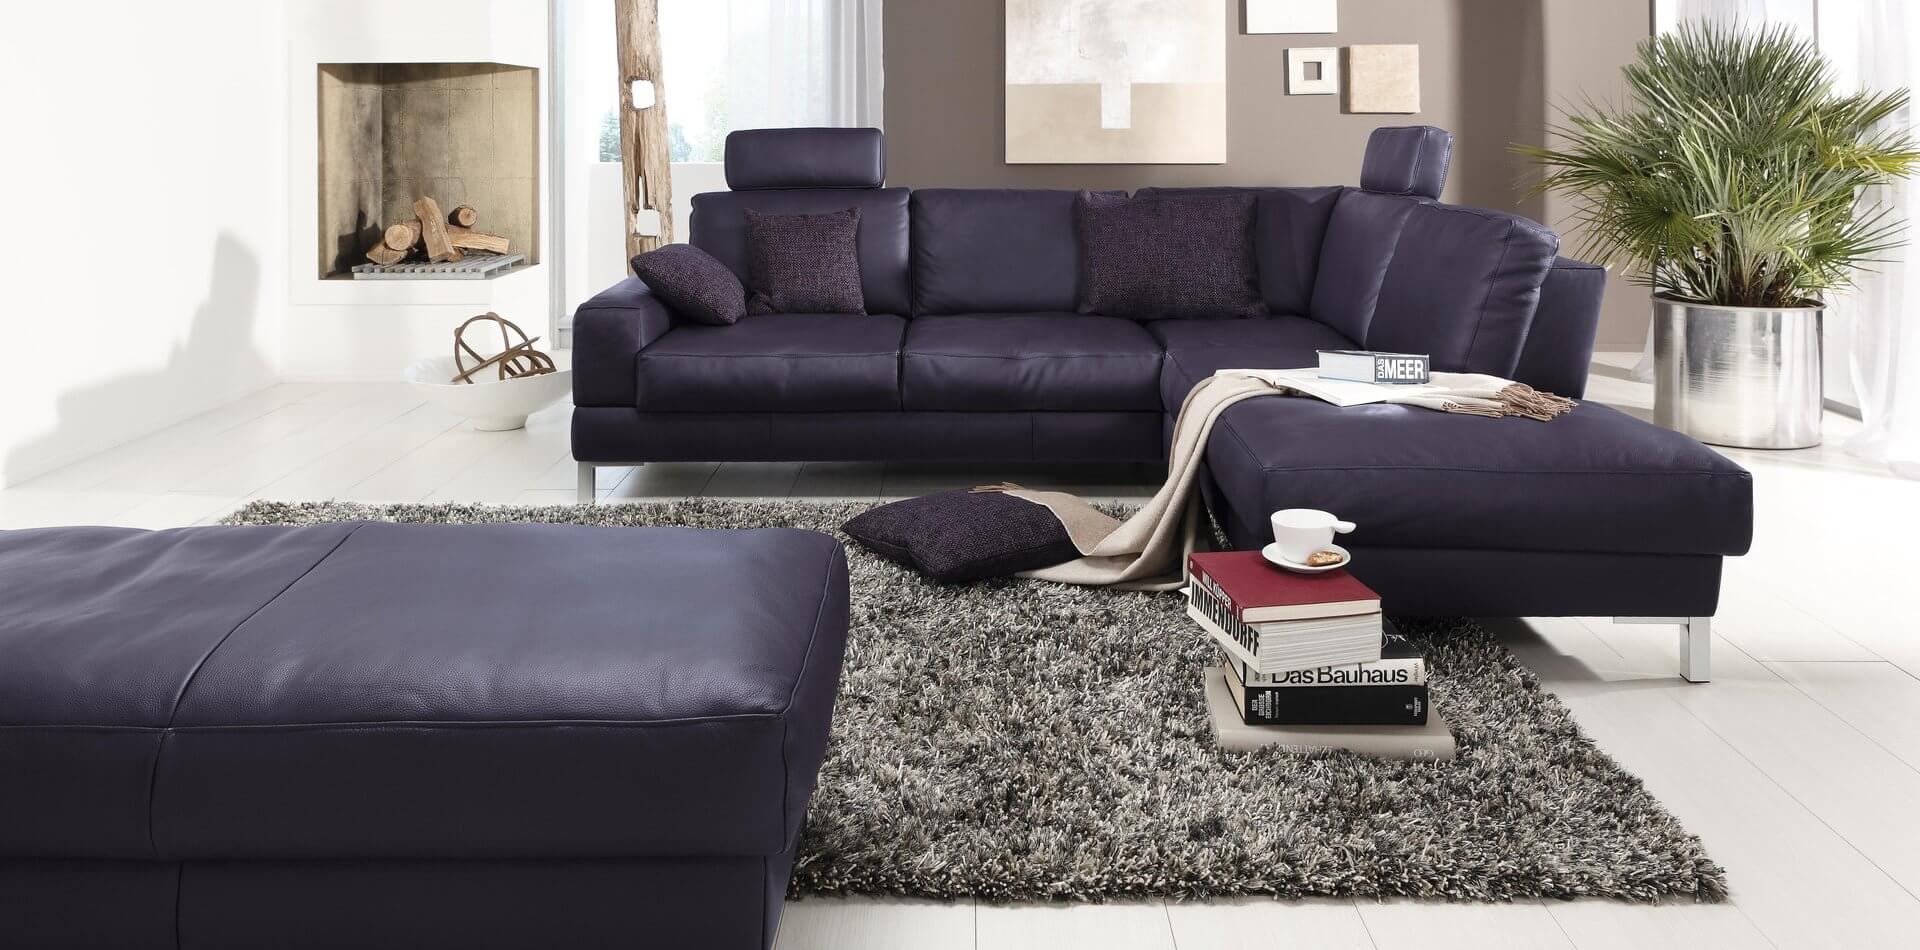 Musterring Ledersofa Mr 6040 › Musterring